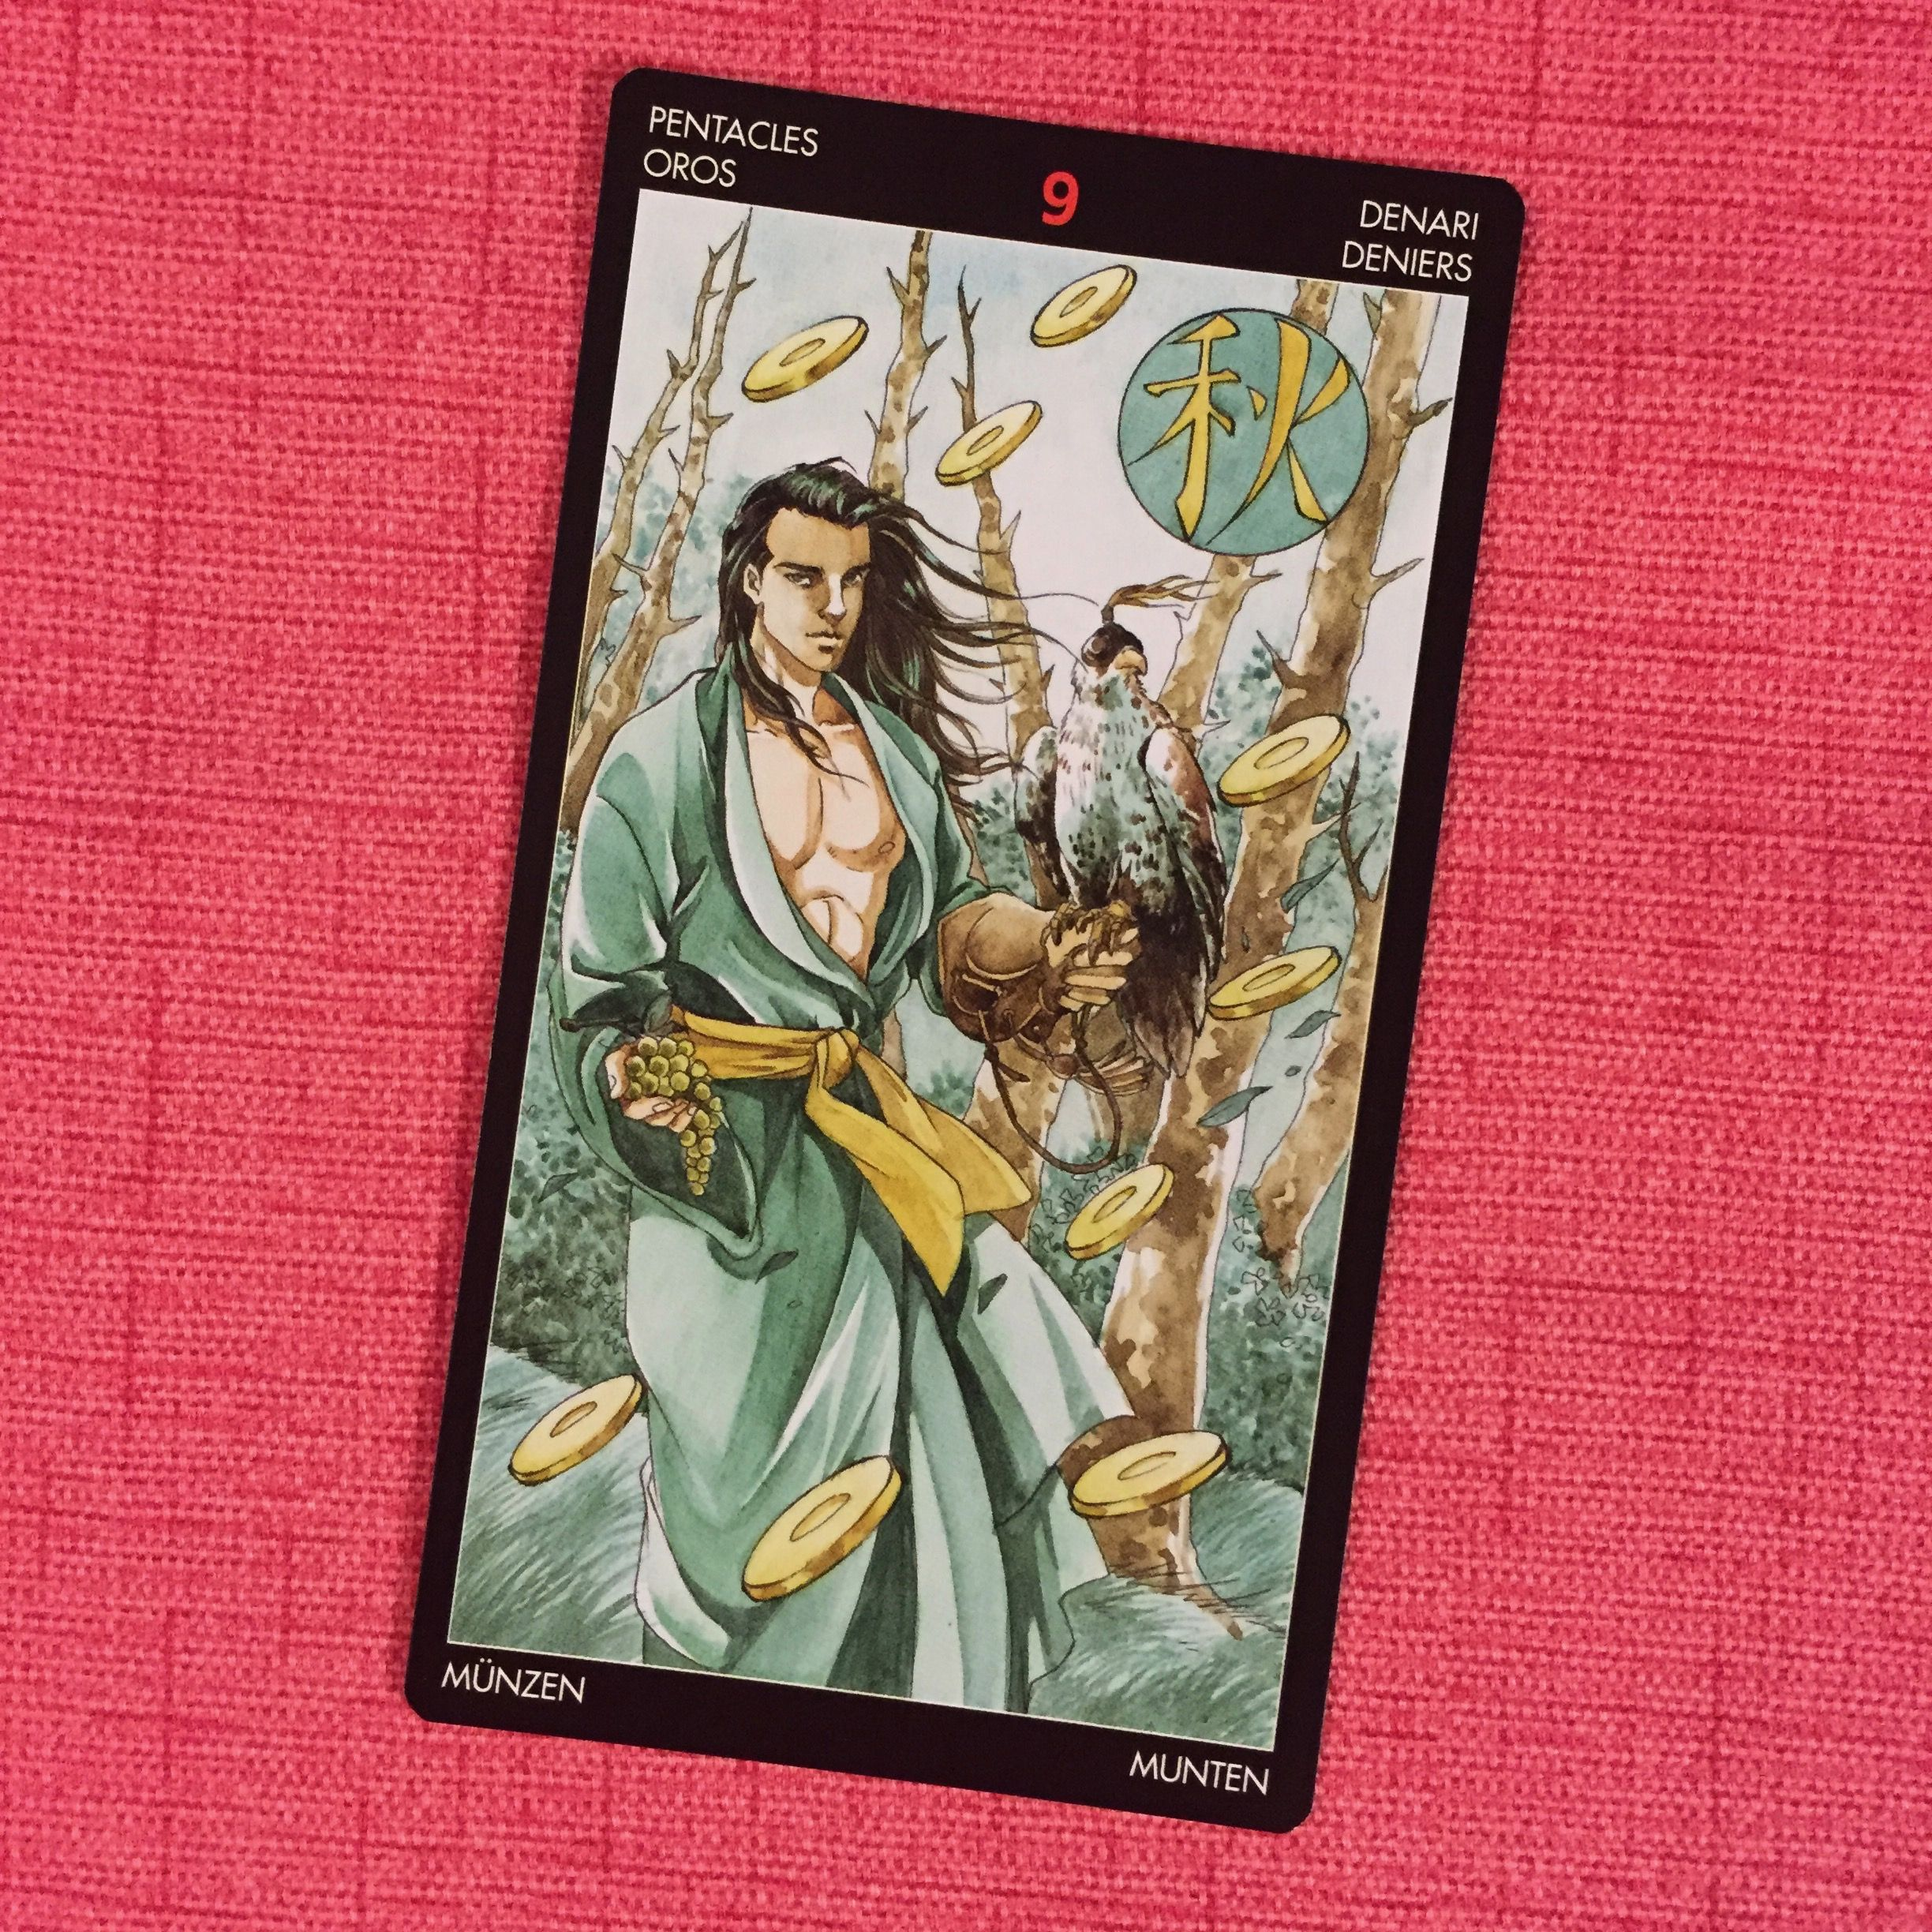 8 Sep 9 Of Pentacles From Manga Tarot From Lo Scarabeo You Are Good